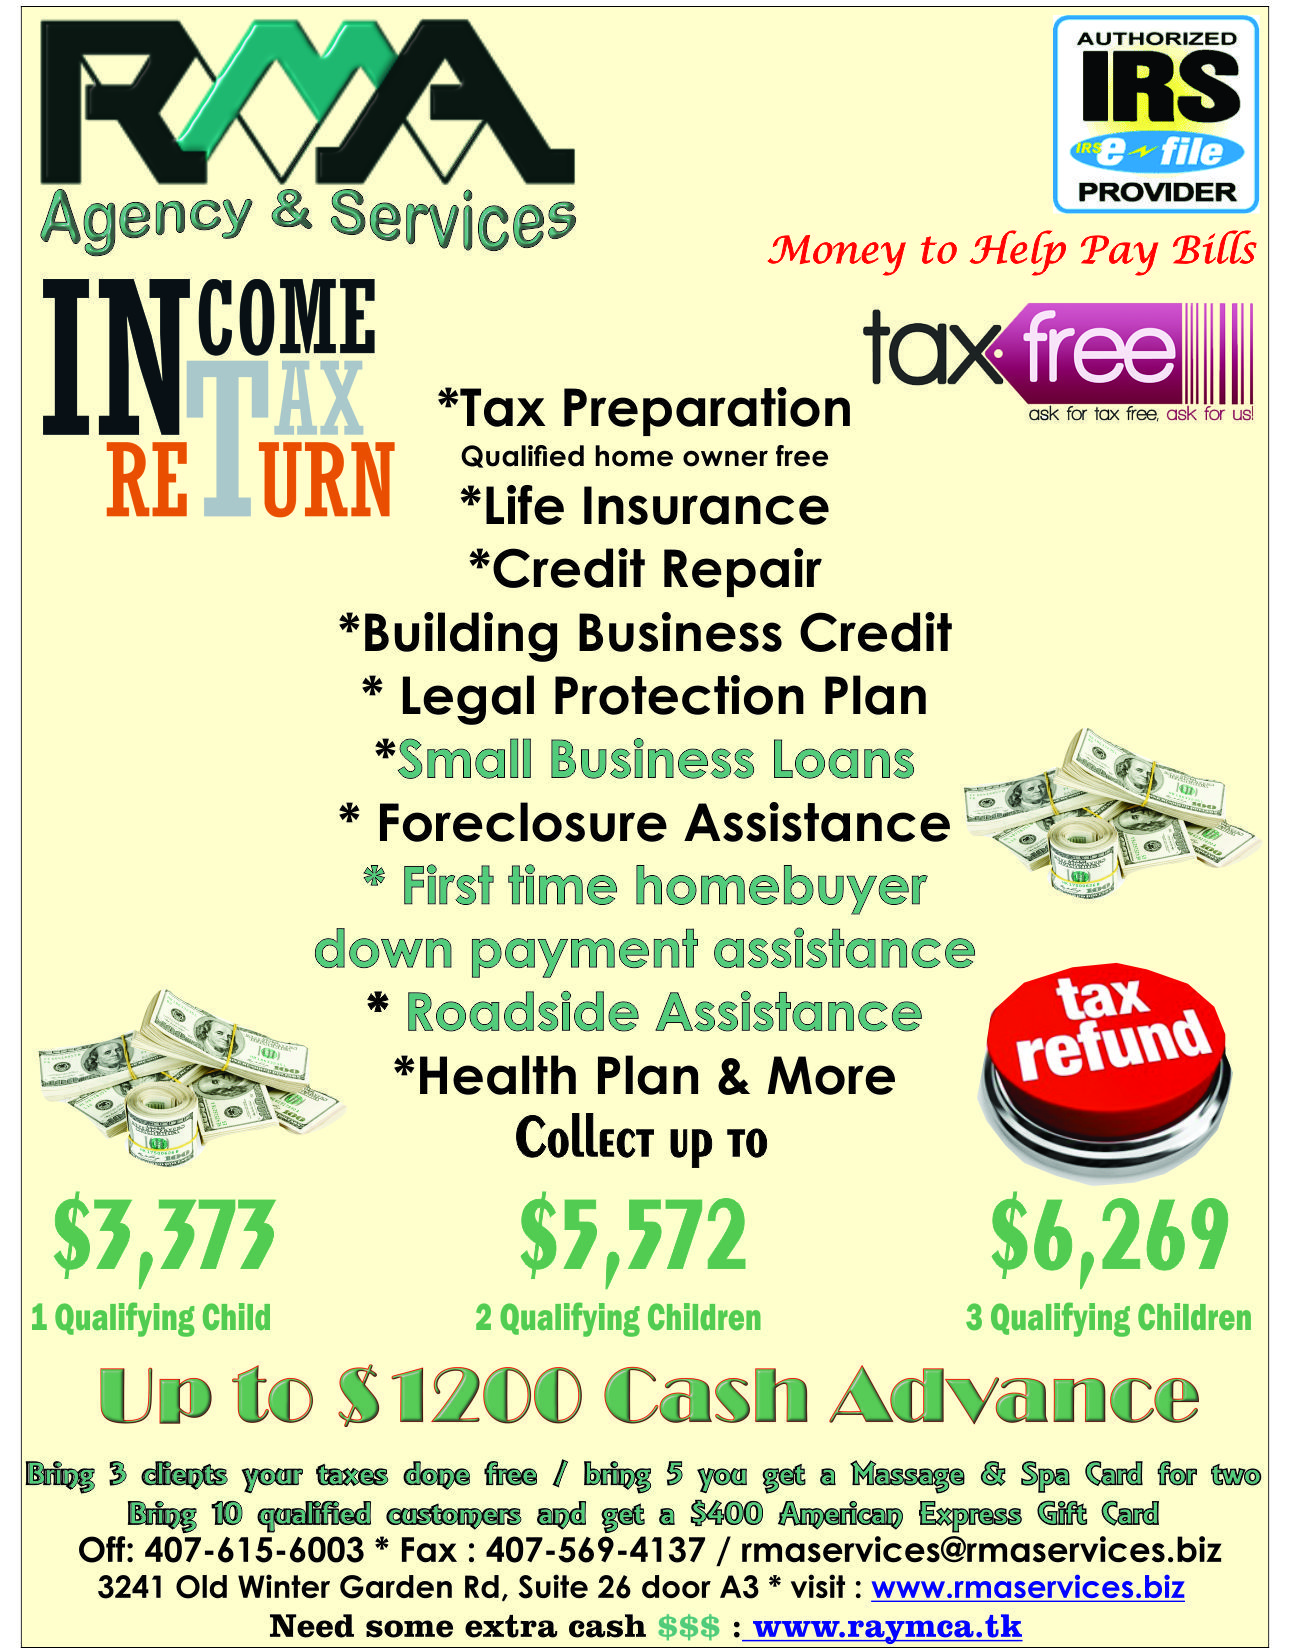 Tax services, Credit Repair, Legal Protection Plan, Life